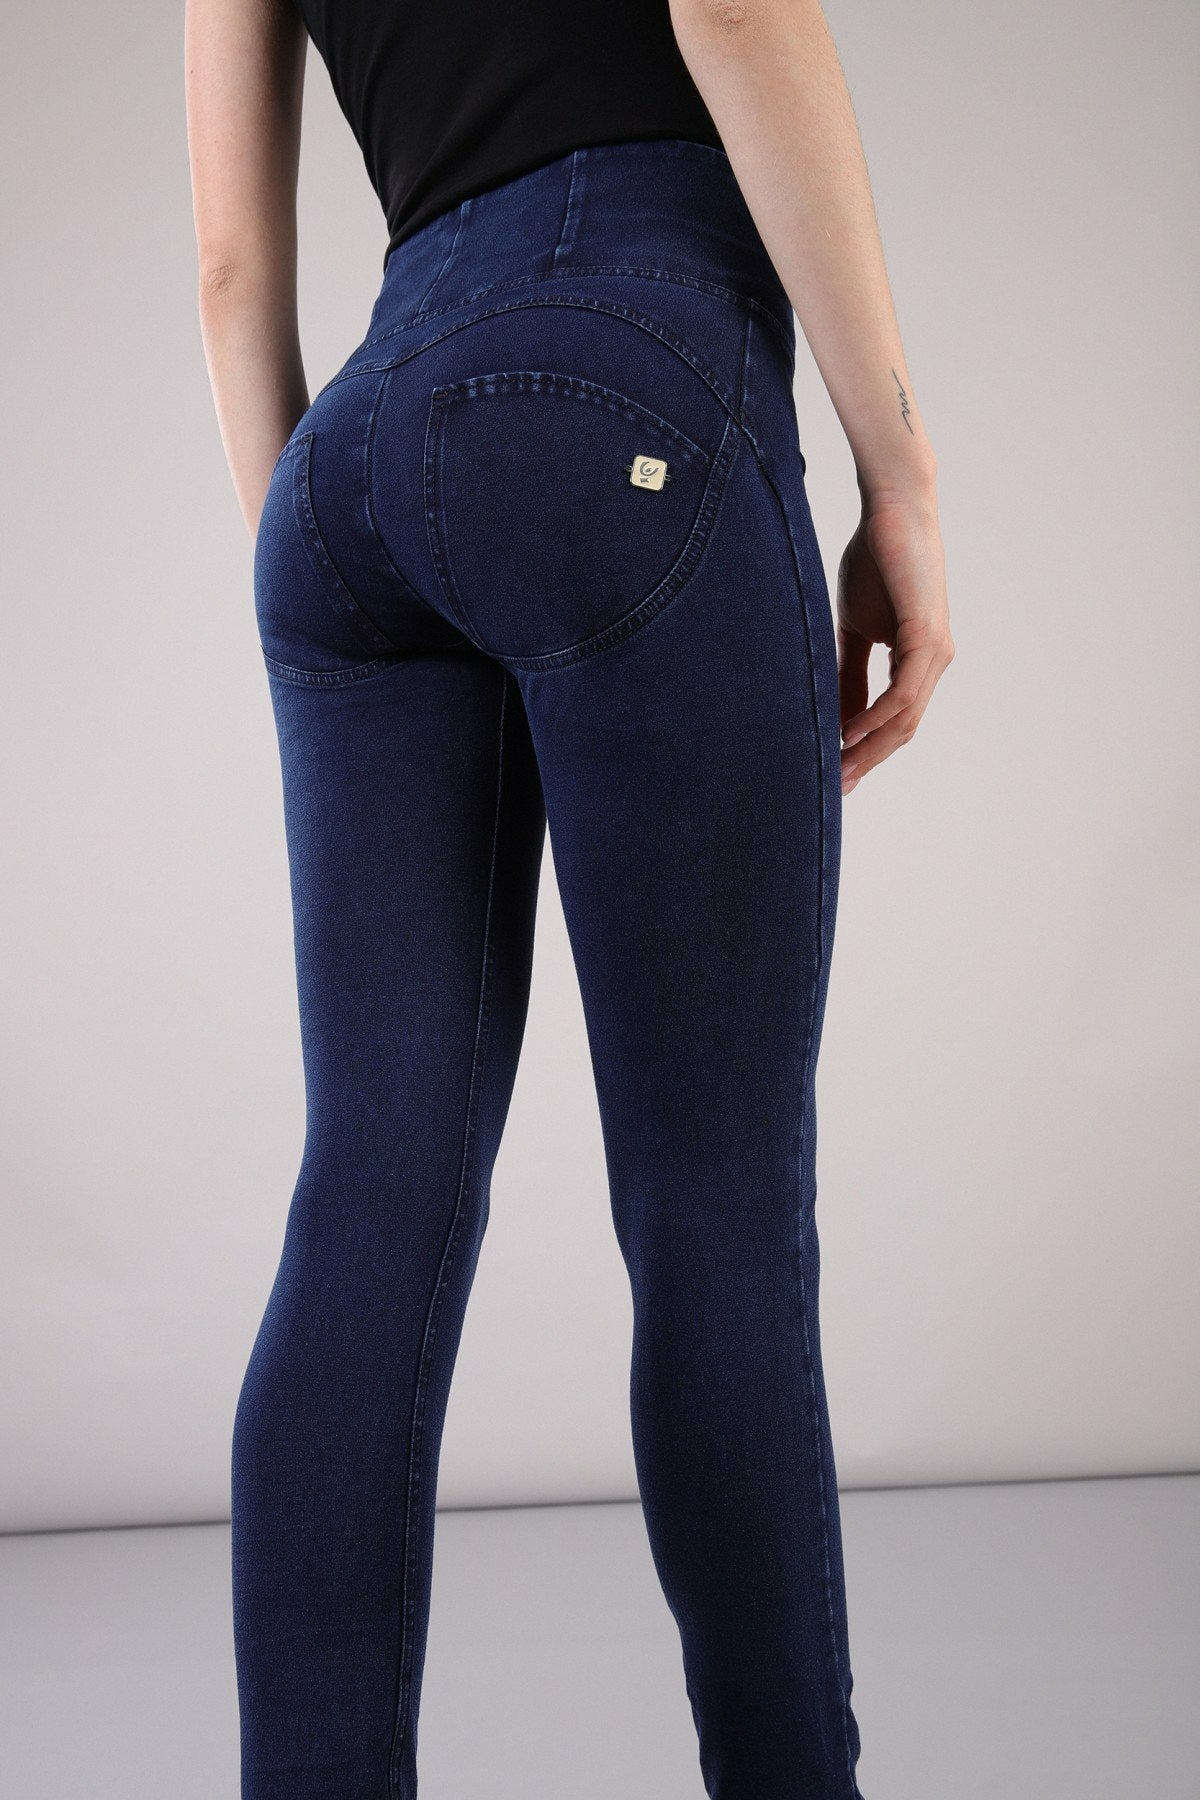 Dark Denim High Waist Freddy